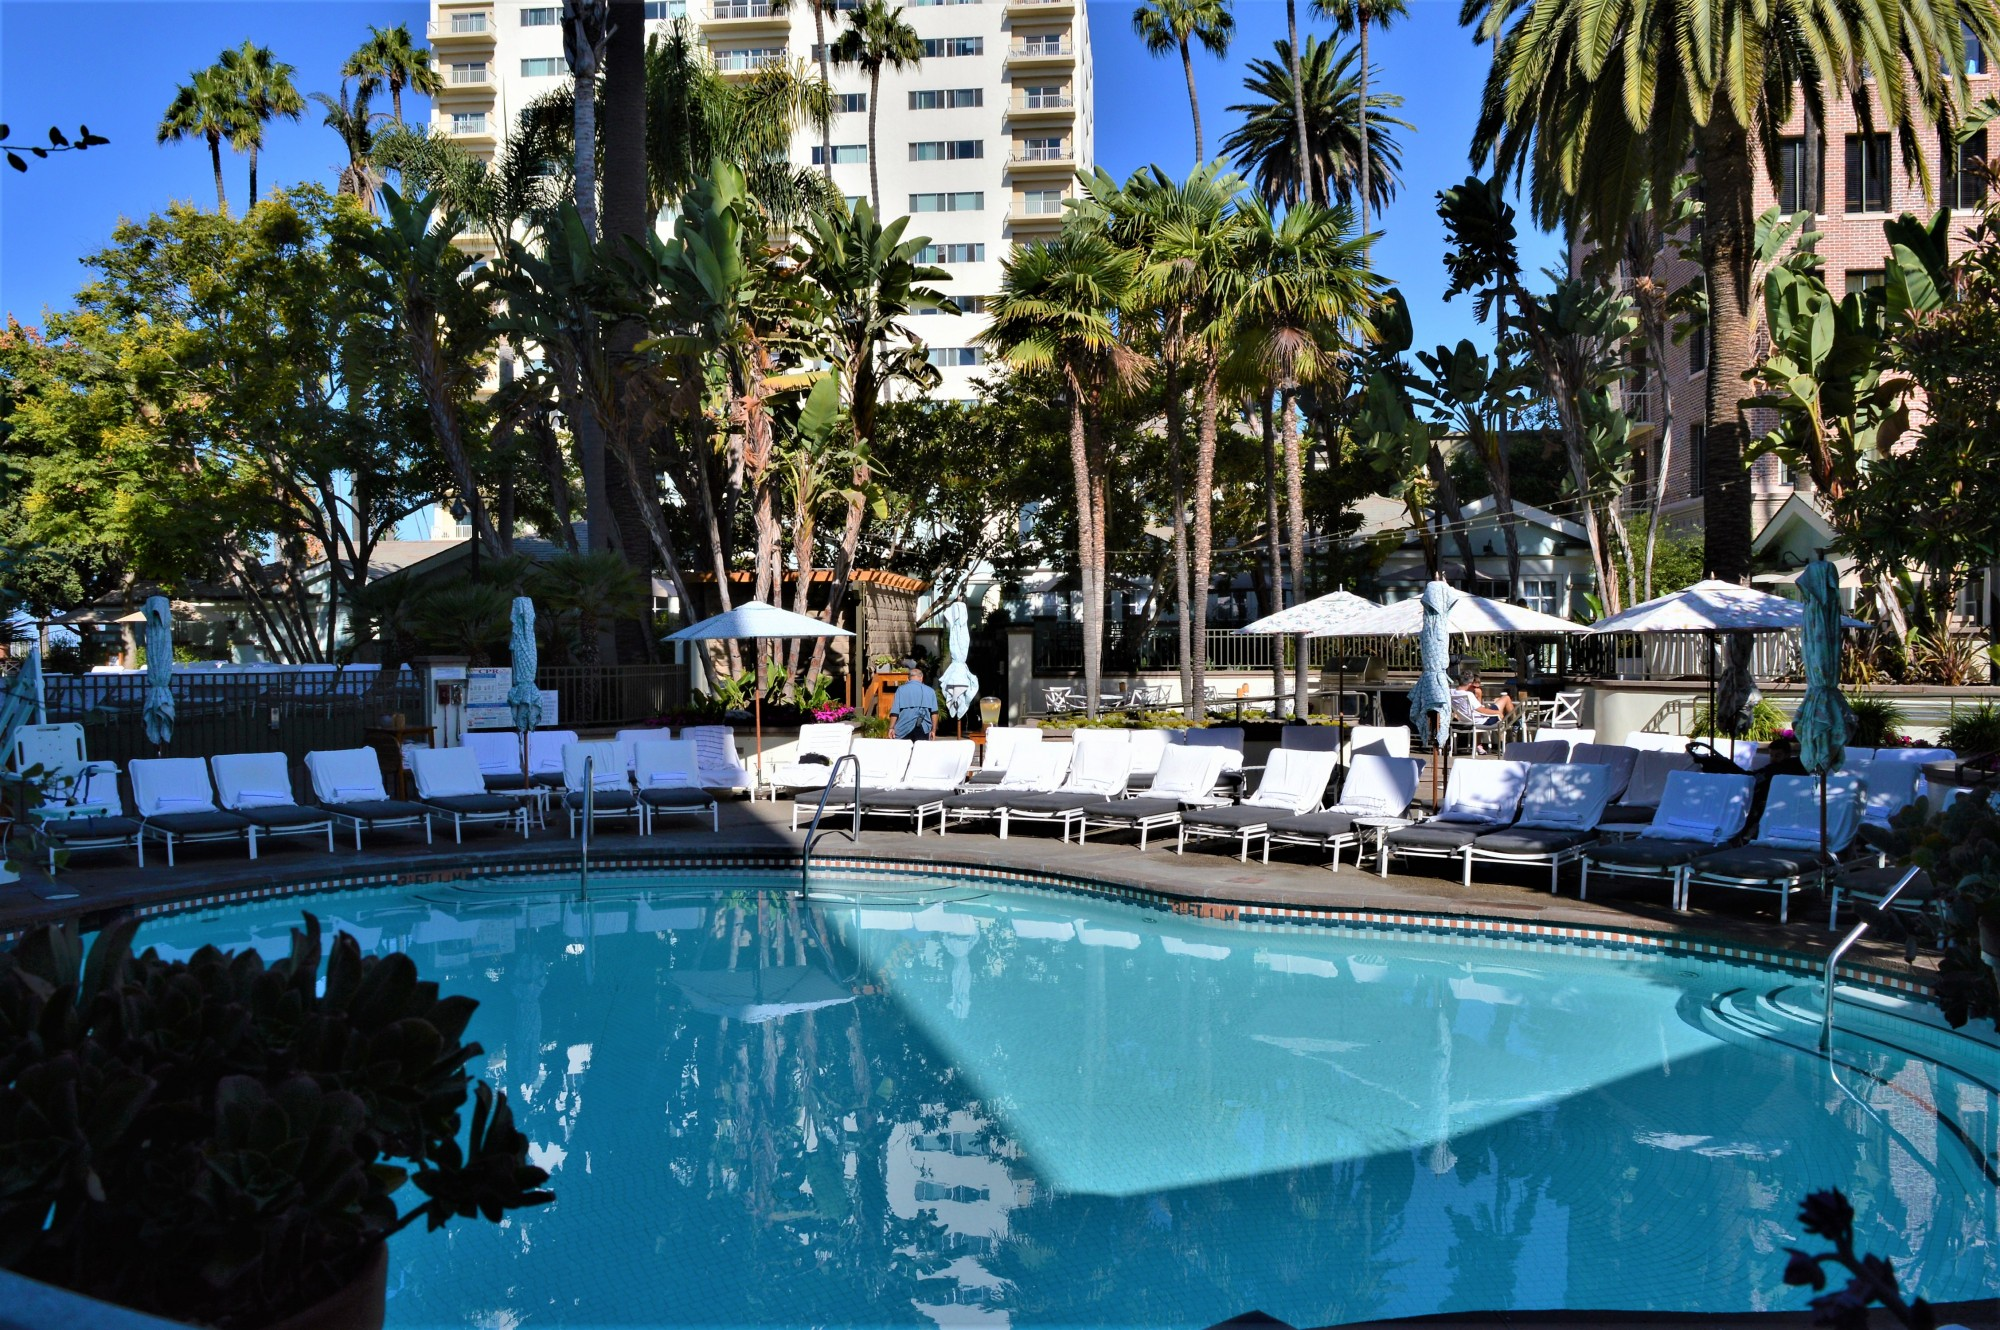 Fairmont Miramar Hotel & Bungalows Pool Santa Monica